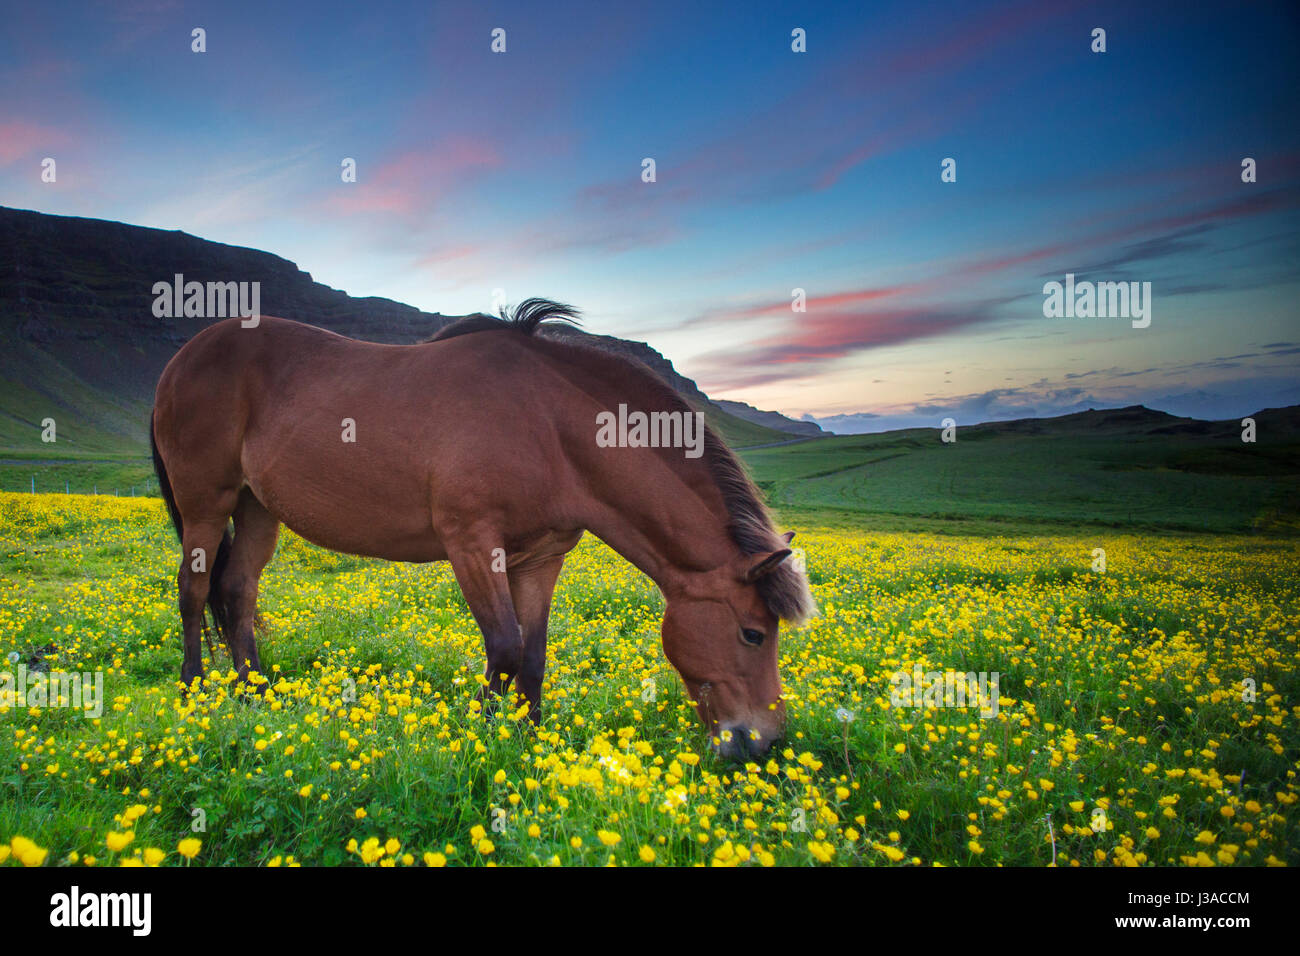 Icelandic horse grazing in a field of flowers - Stock Image